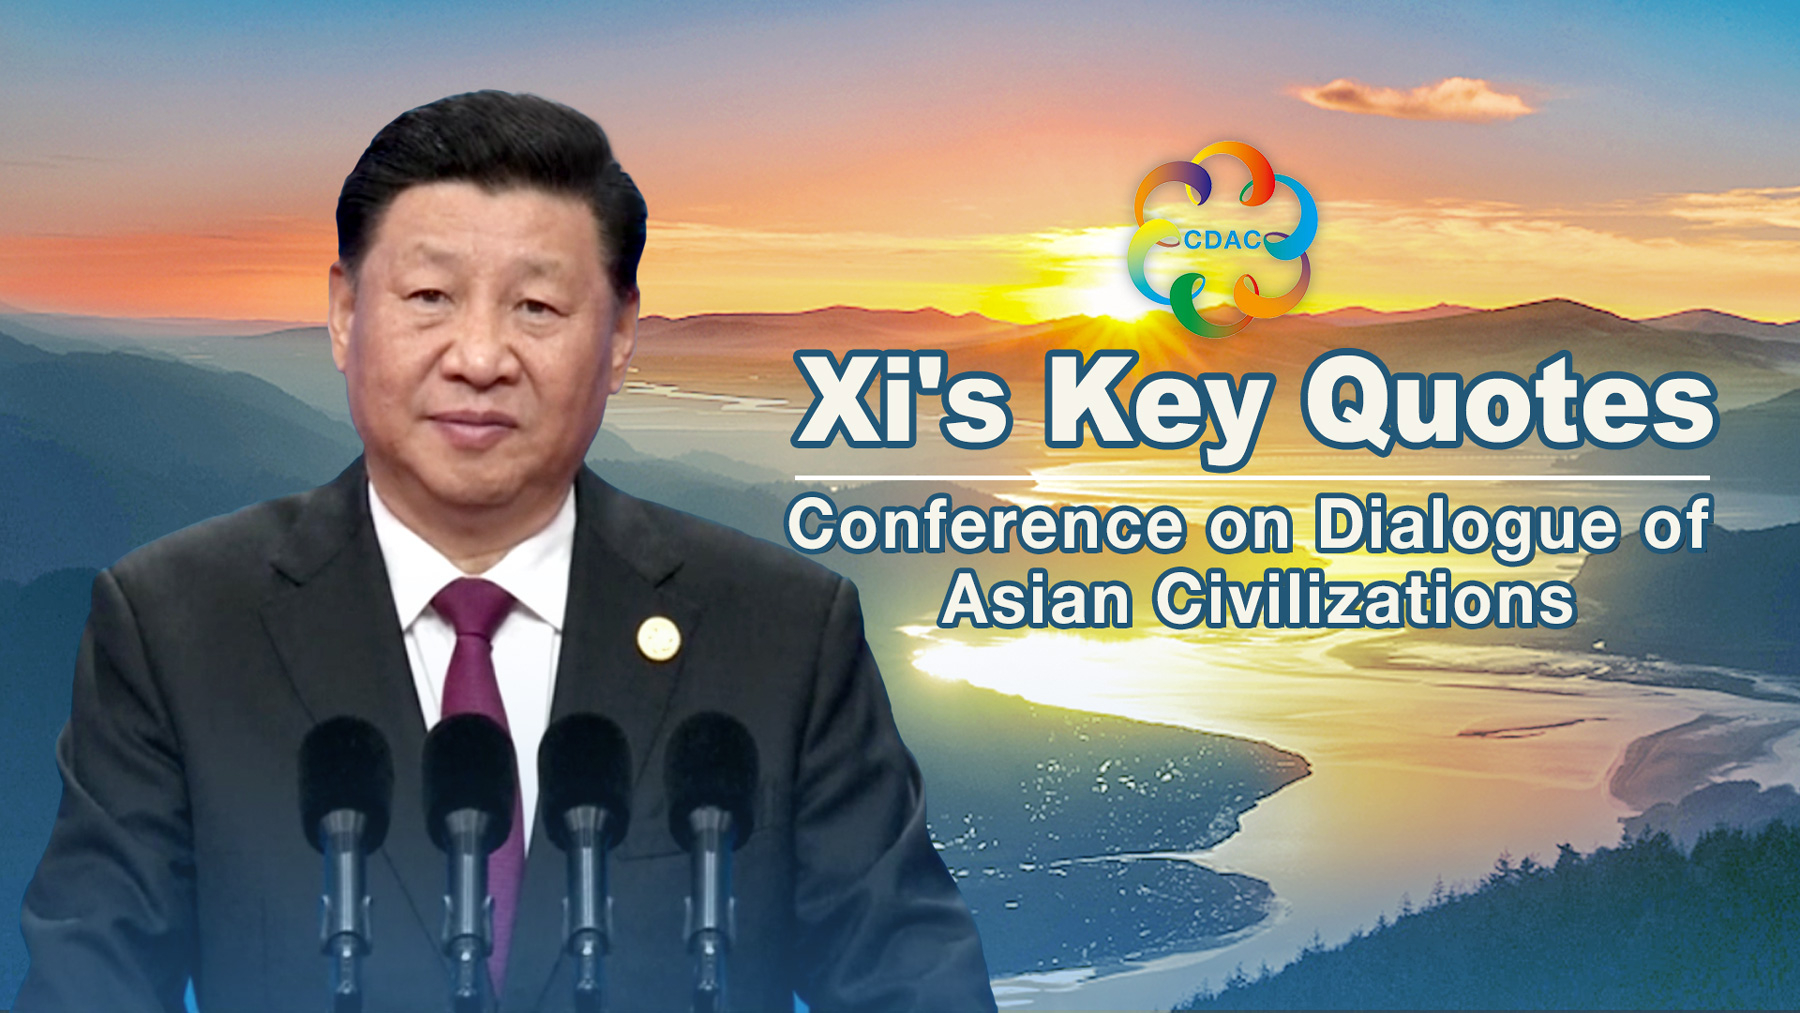 Citaten Strijd Xi : Xi s key quotes from conference on dialogue of asian civilizations